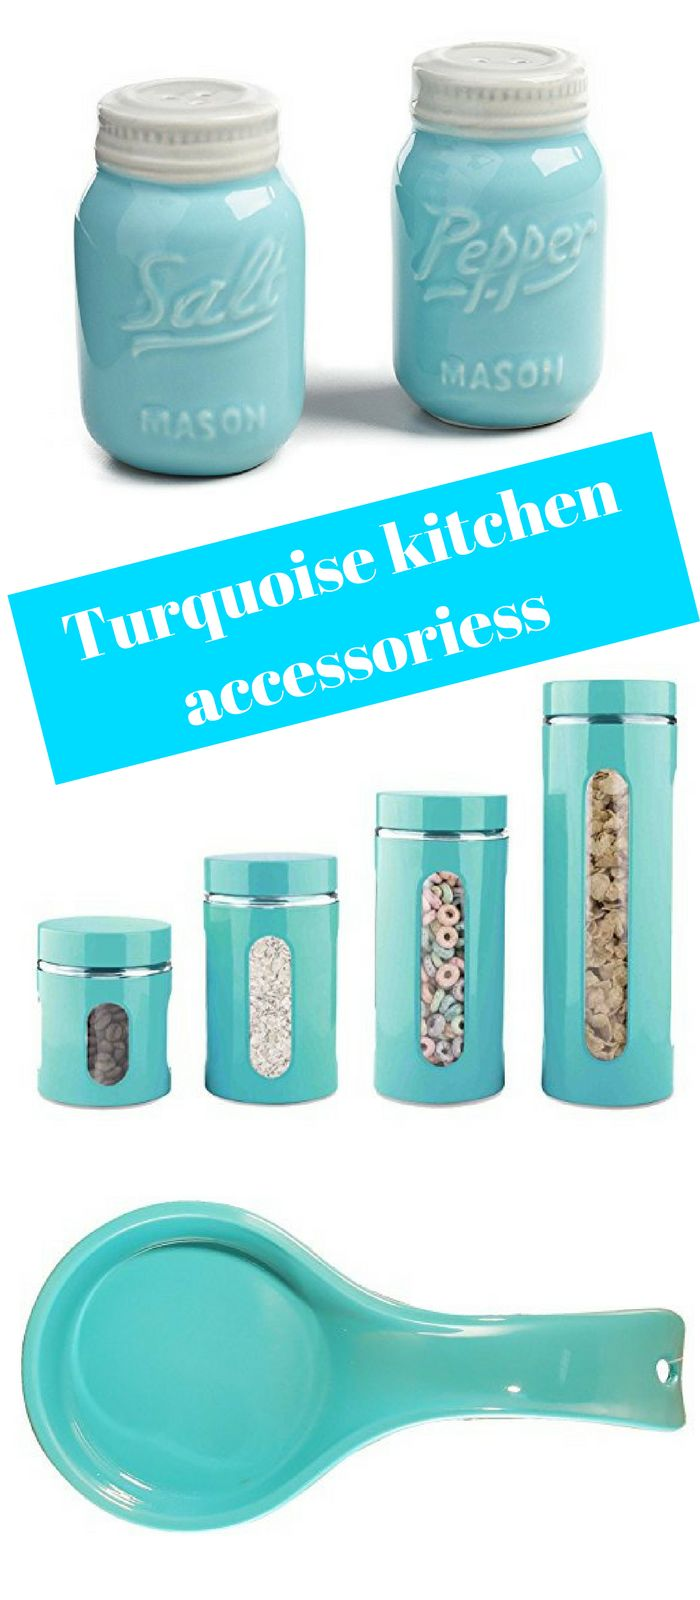 Turquoise kitchen accessories are just lovely!  They are exactly what one needs to add a …I just love the Mason jar design of the salt and pepper shakers!